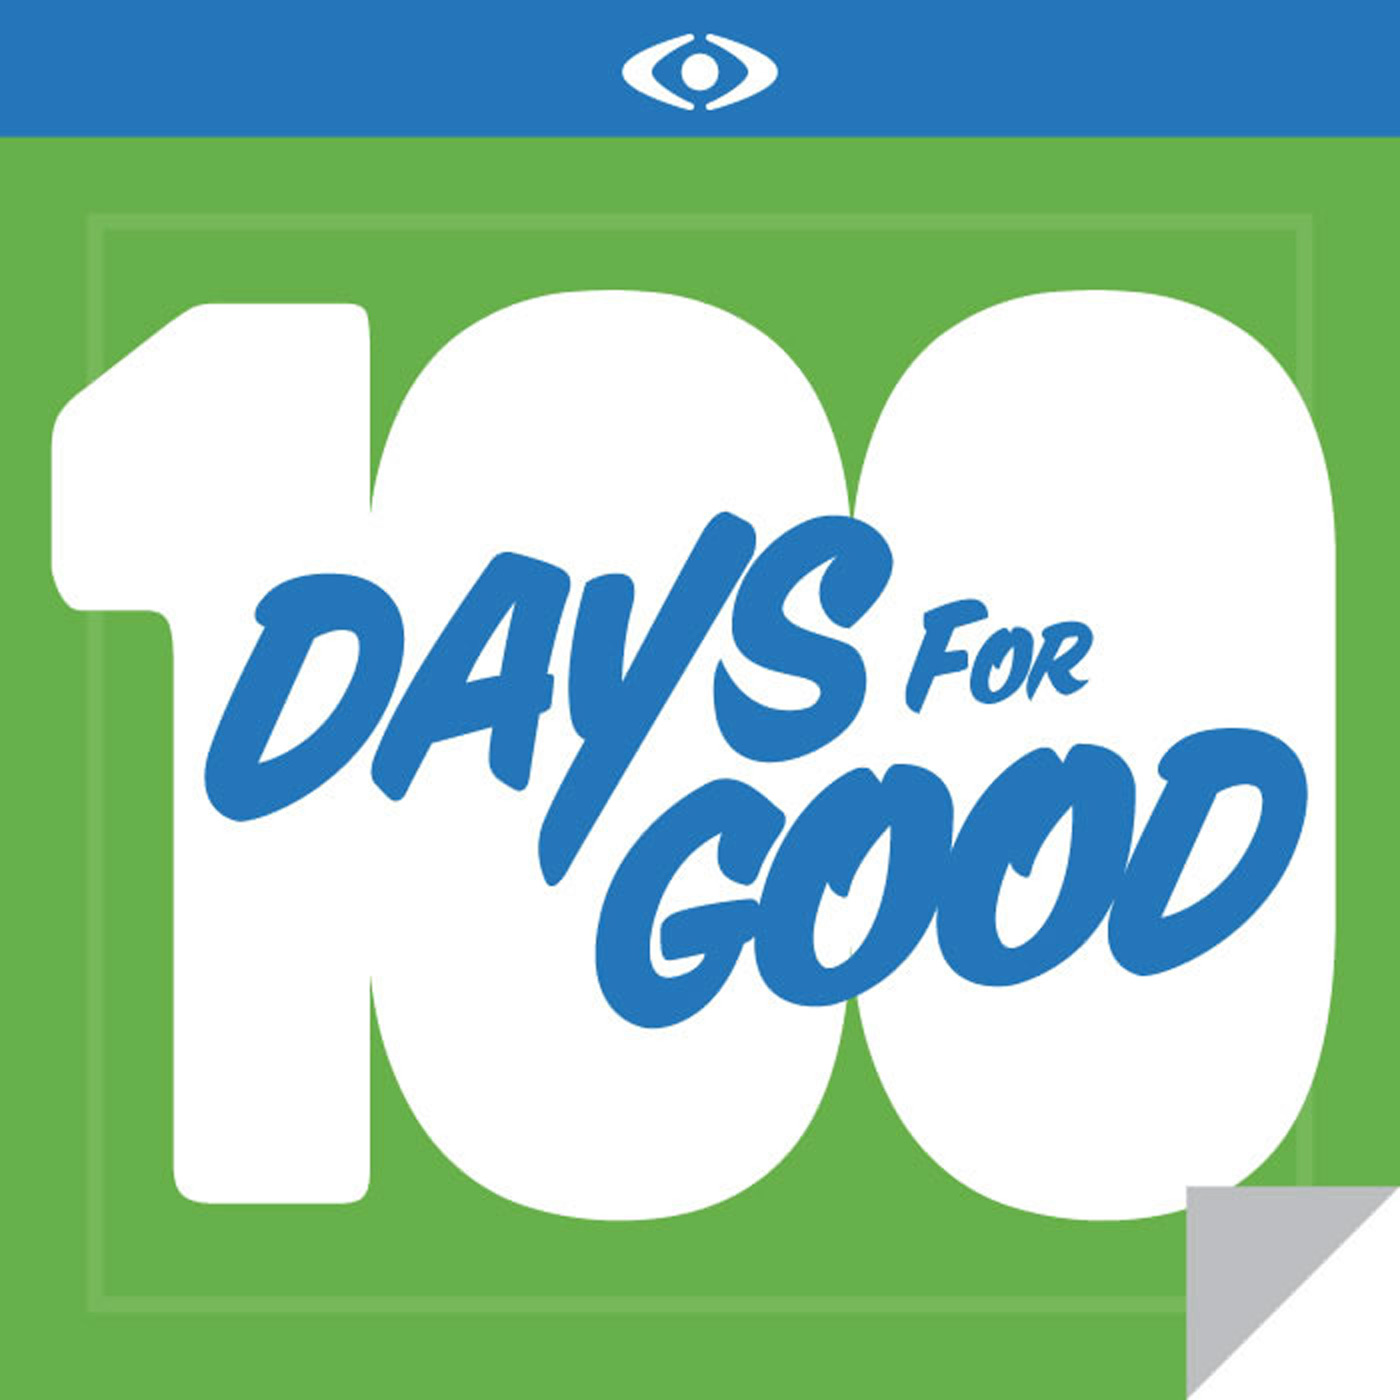 100 Days for Good